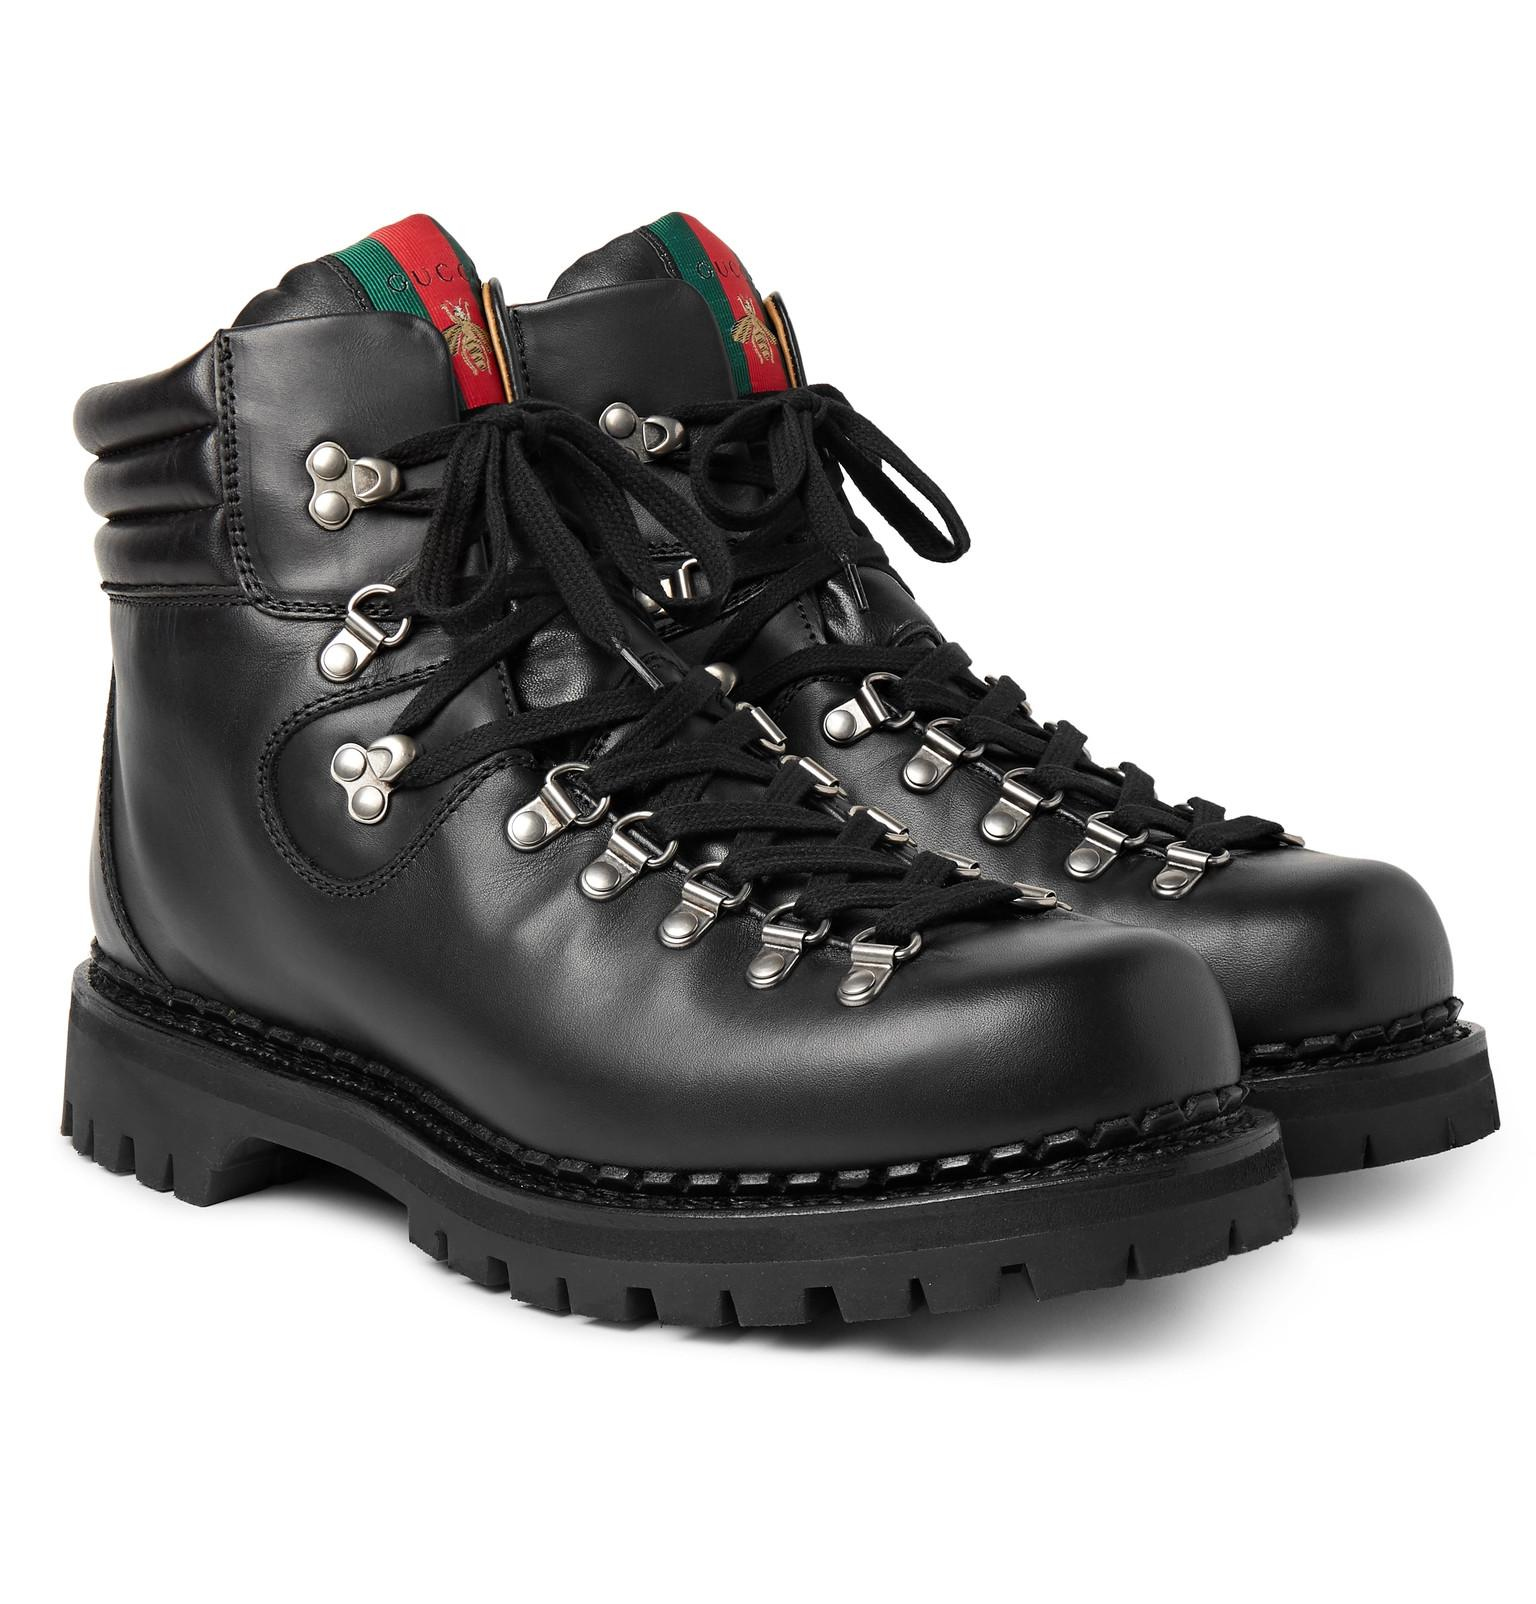 6dfbf0115eb86 Lyst - Gucci Tracker Leather Boots in Black for Men